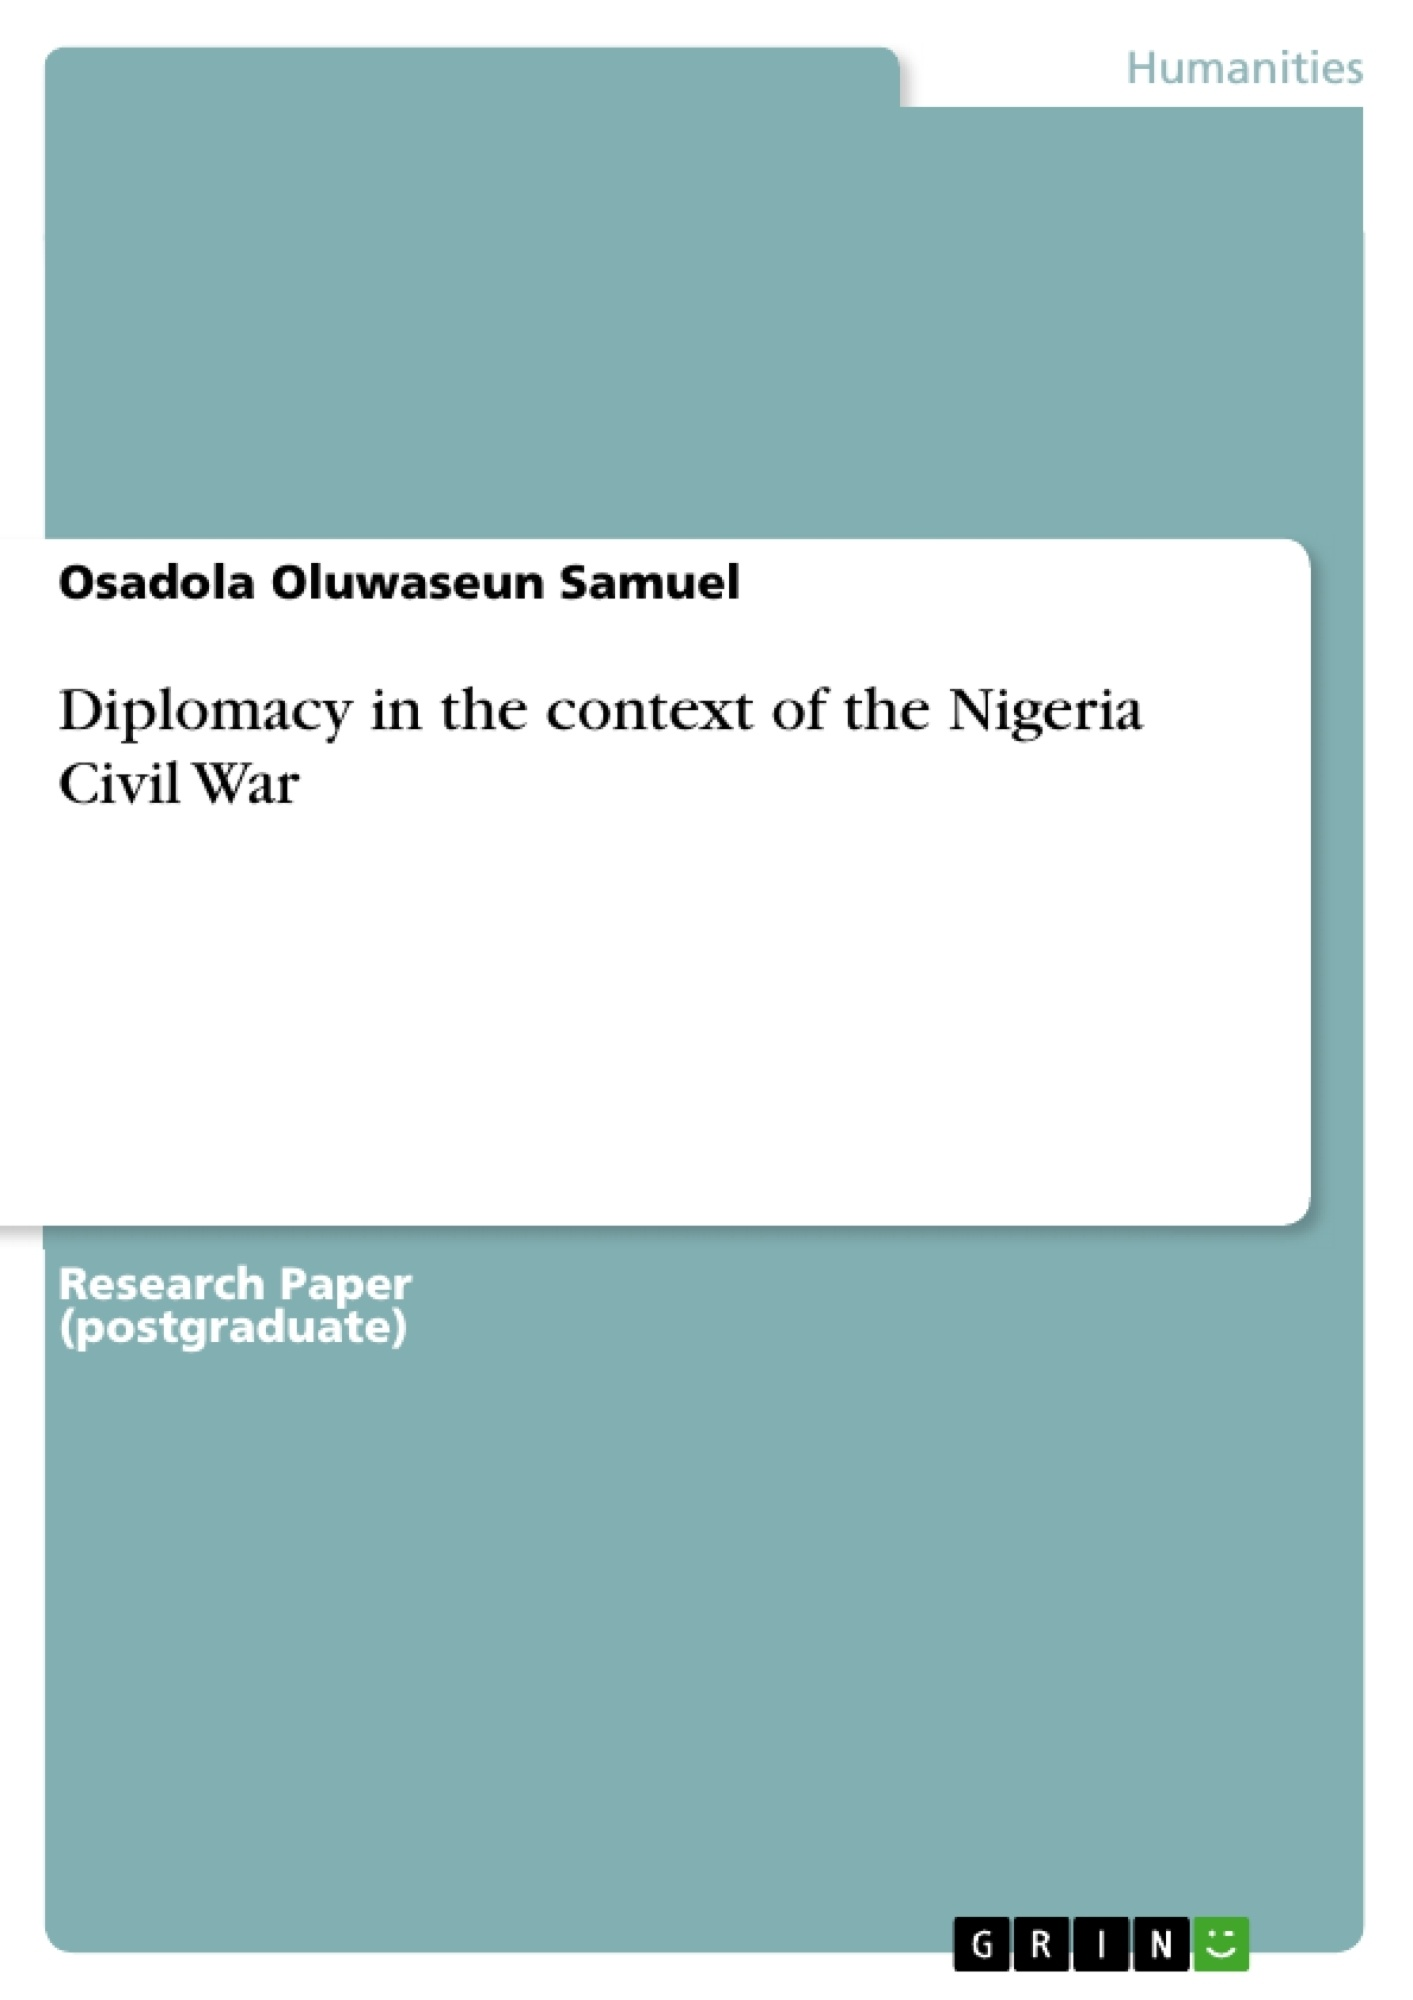 Title: Diplomacy in the context of the Nigeria Civil War